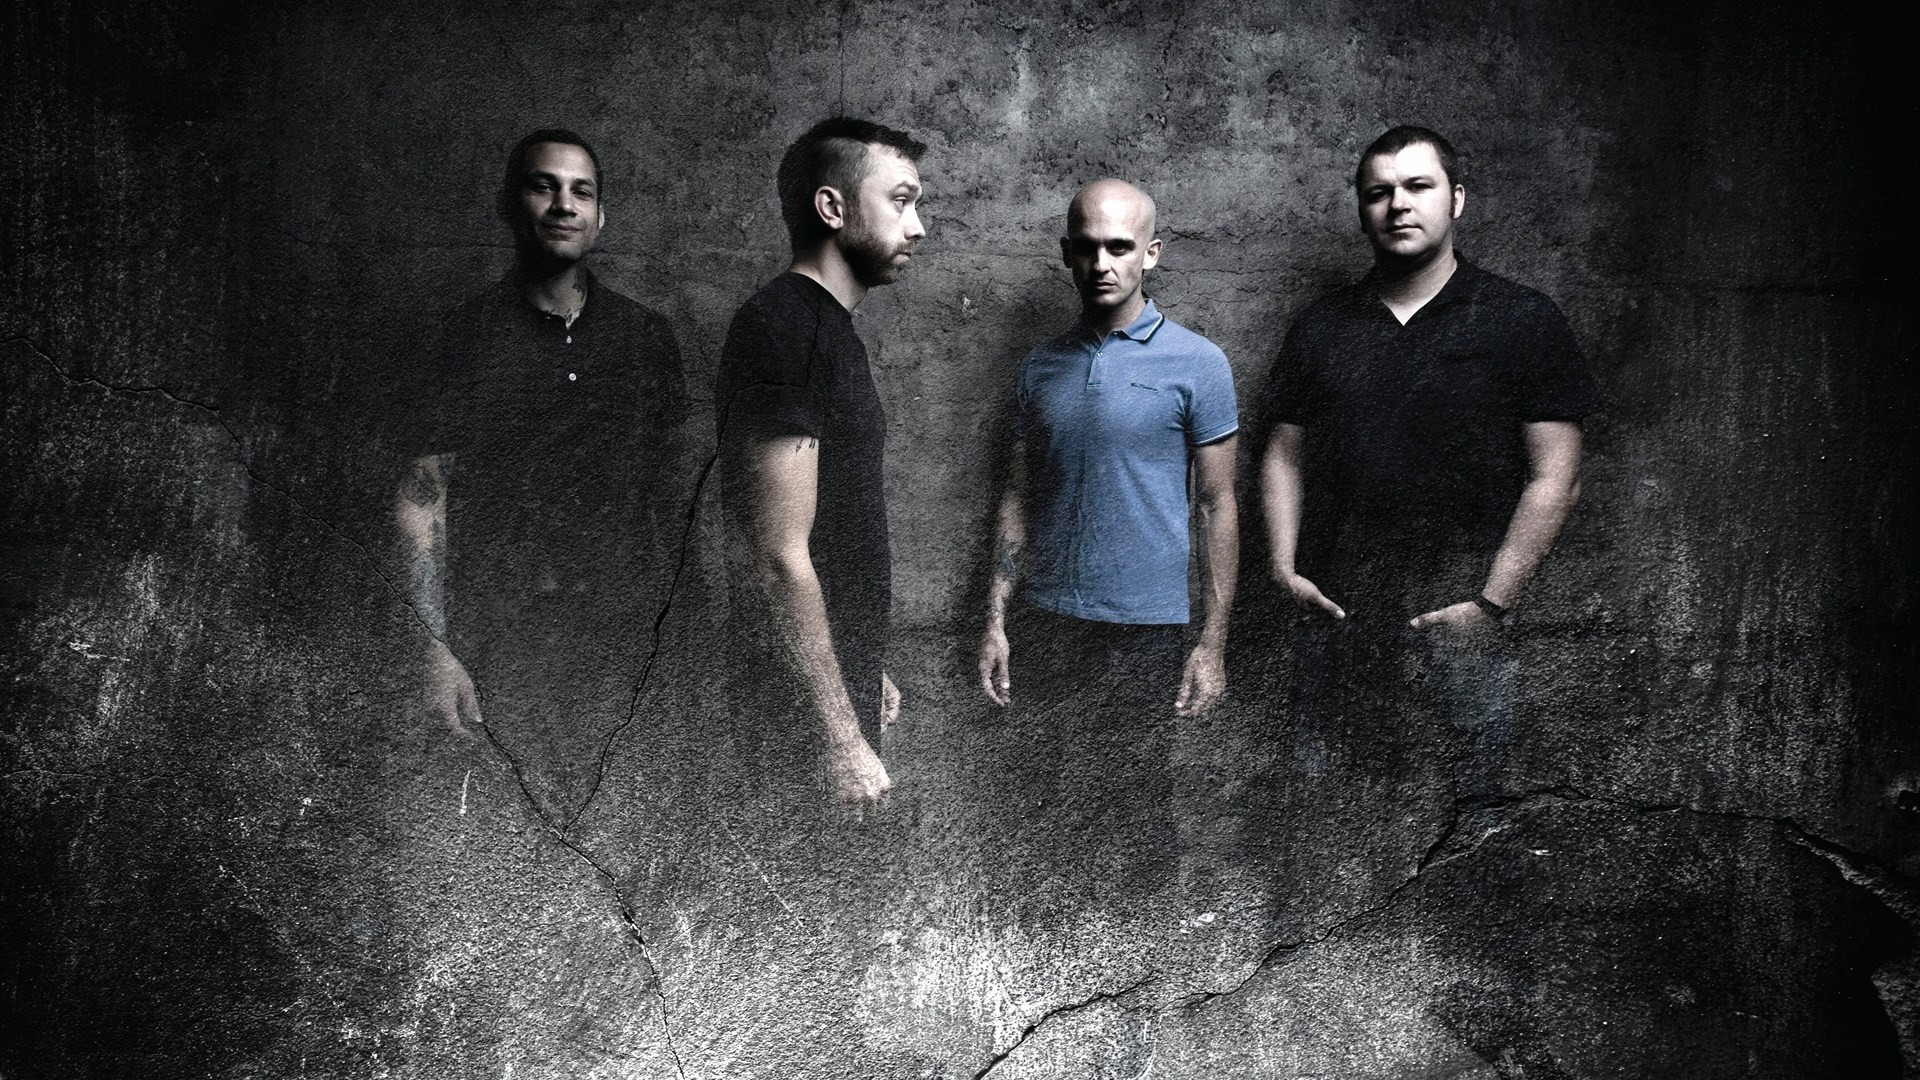 Res: 1920x1080, Zach Blair Tim McIlrath Rise Against Joe Principe Brandon Barnes 1080p HD  Wallpaper Background